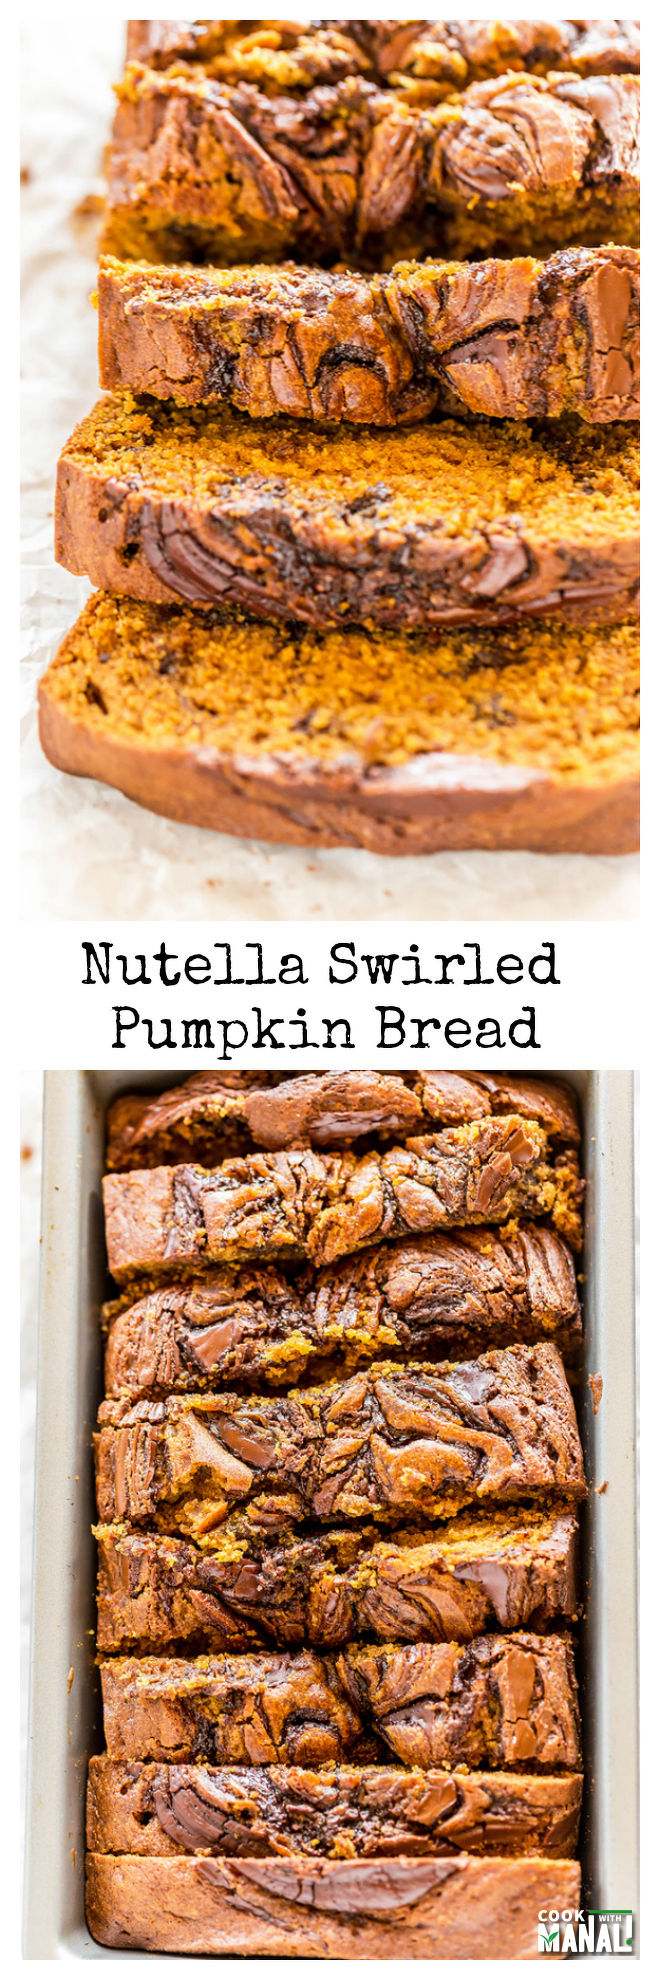 nutella-swirled-pumpkin-bread-collage